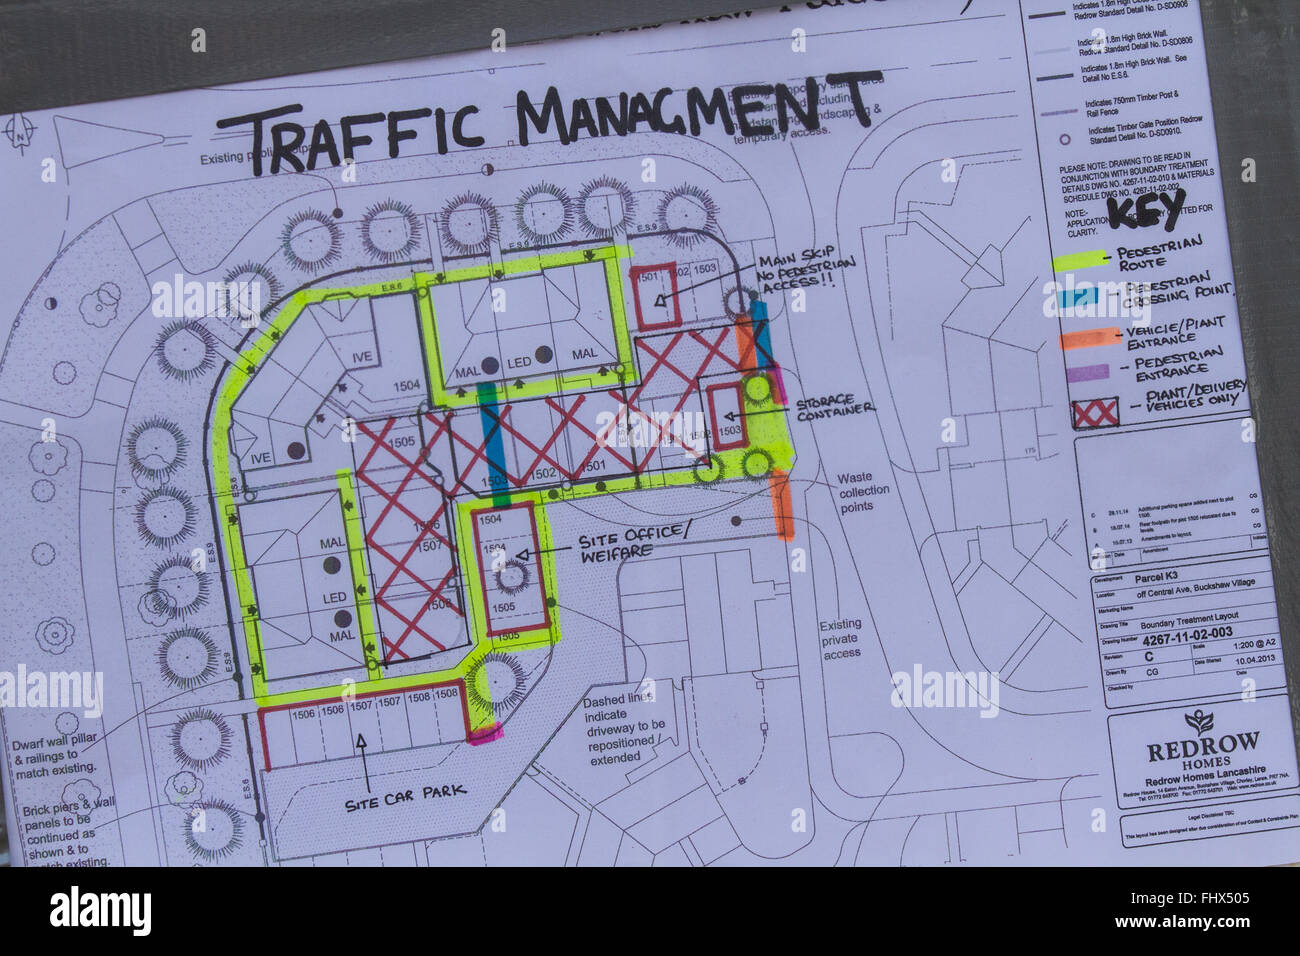 building site plan mis spelt traffic management amp safety site plan for redrow 10844